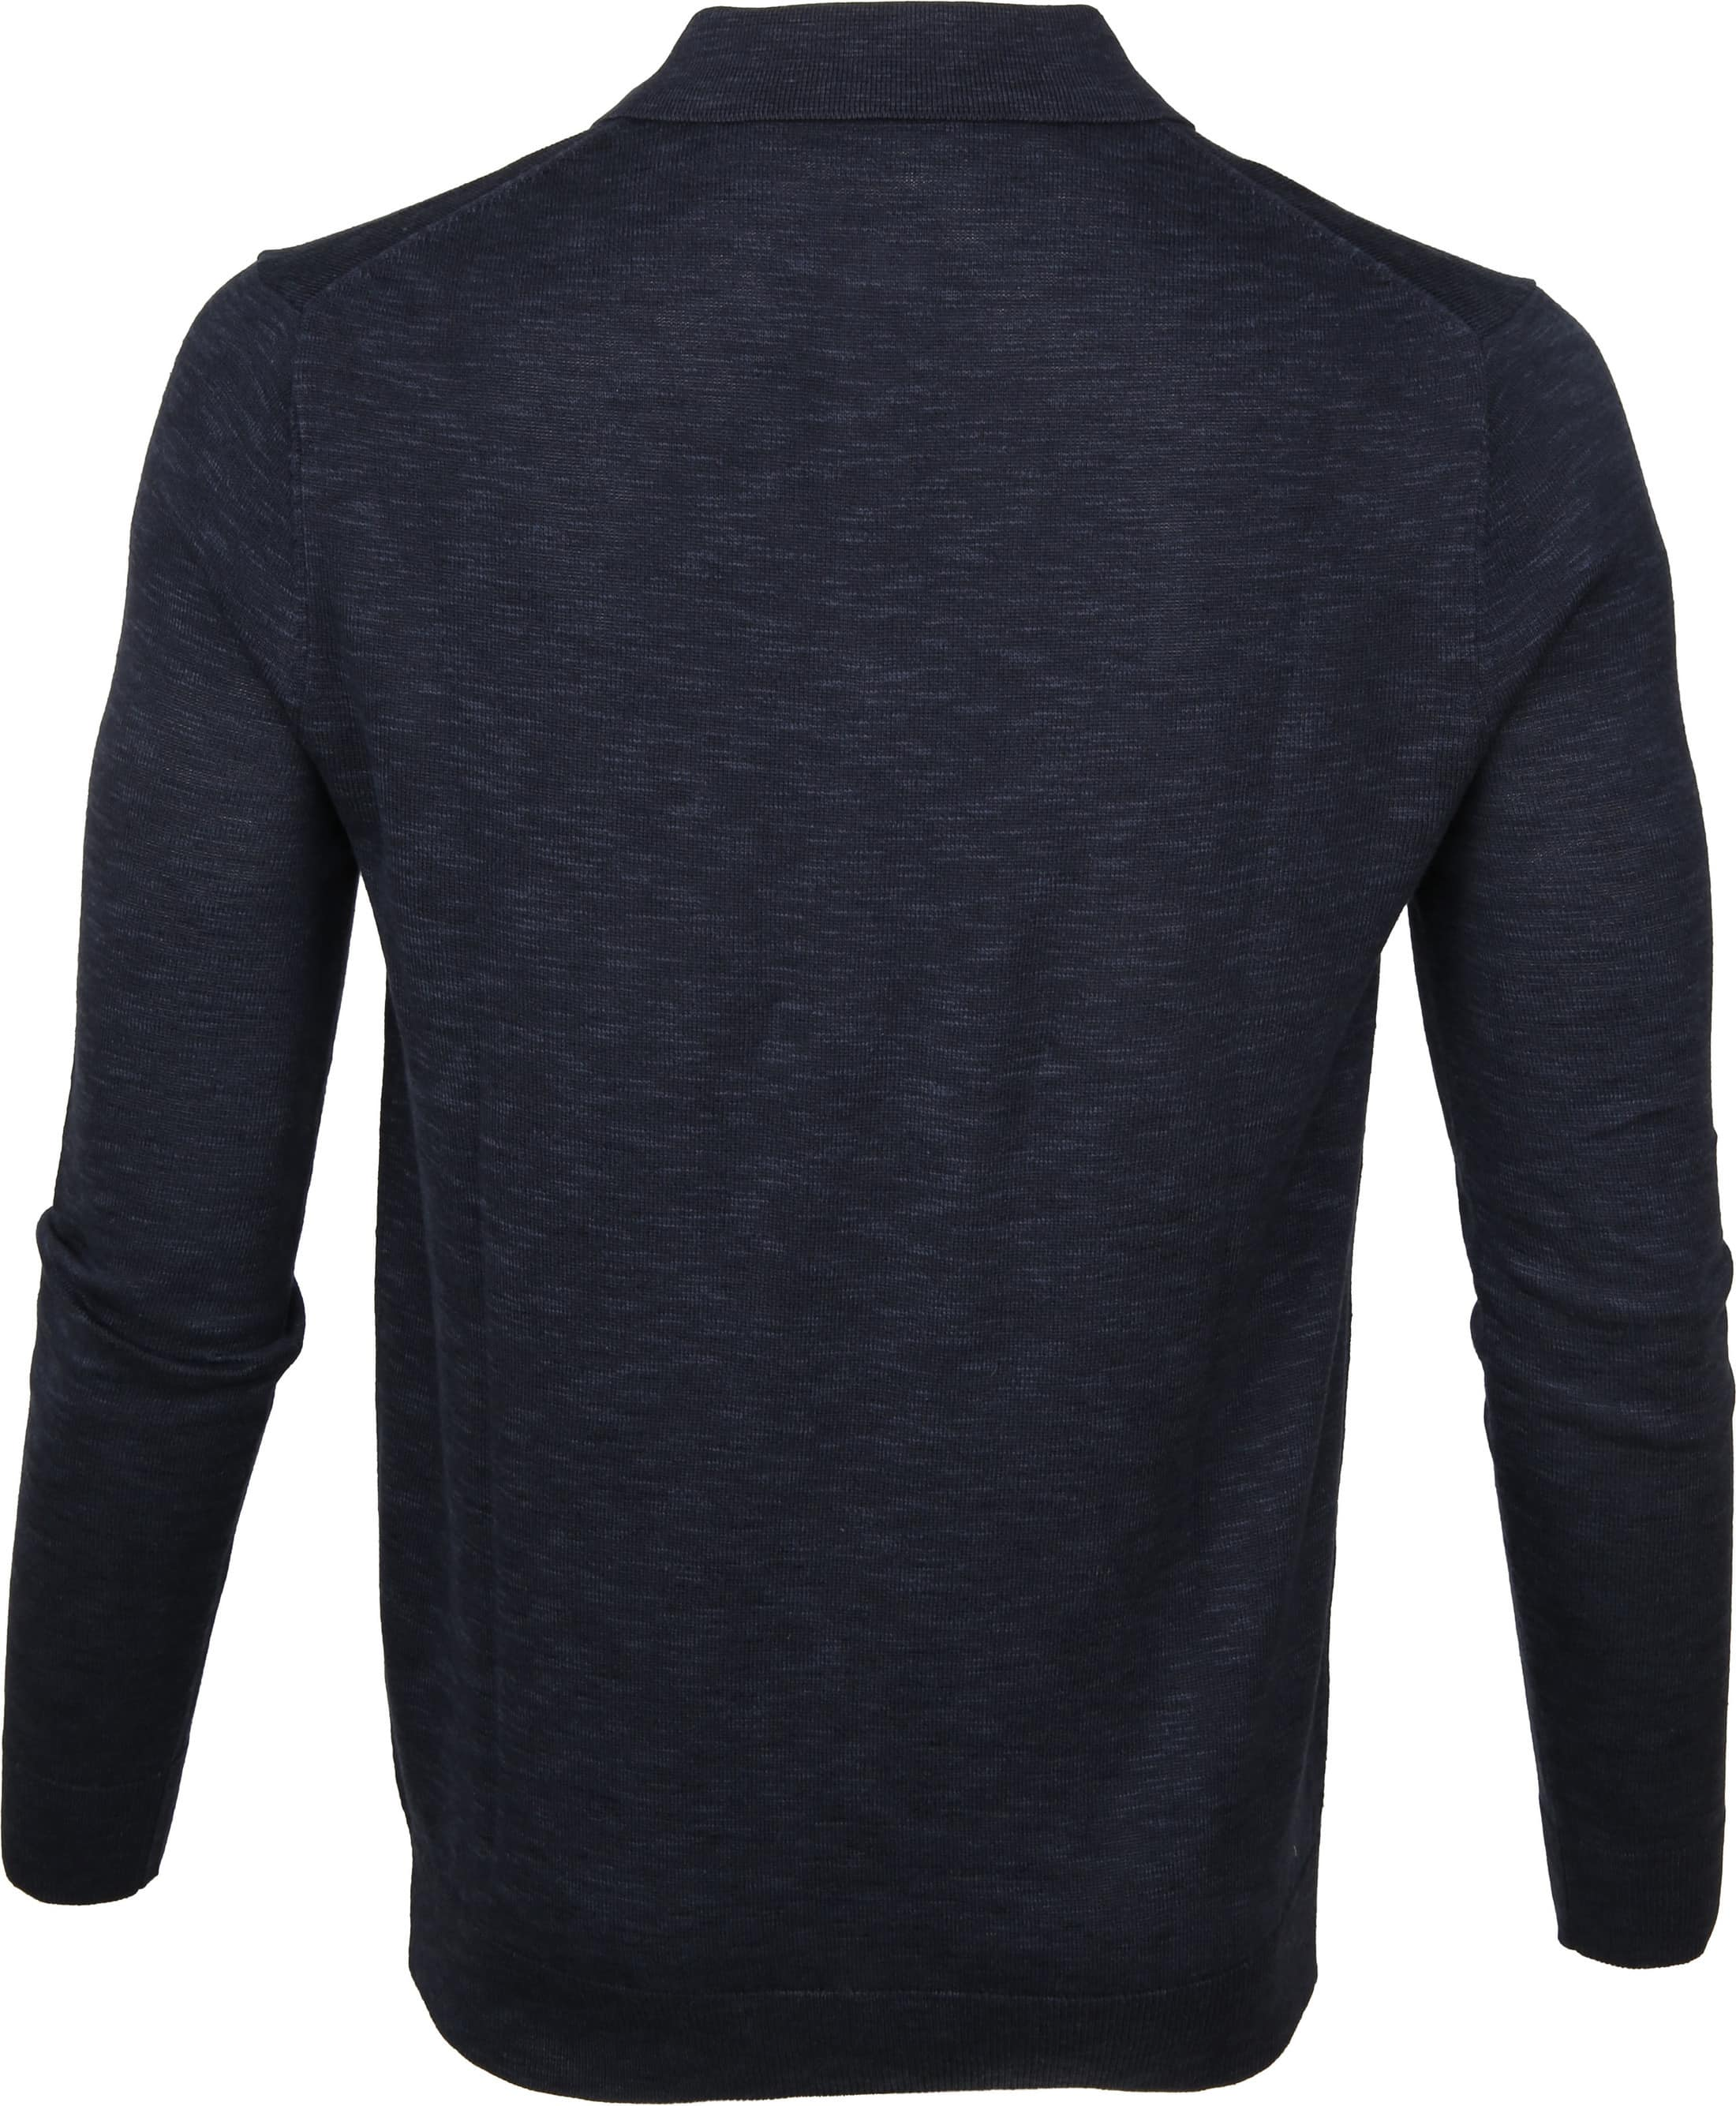 Knowledge Cotton Apparel Longsleeve Polo Navy foto 3